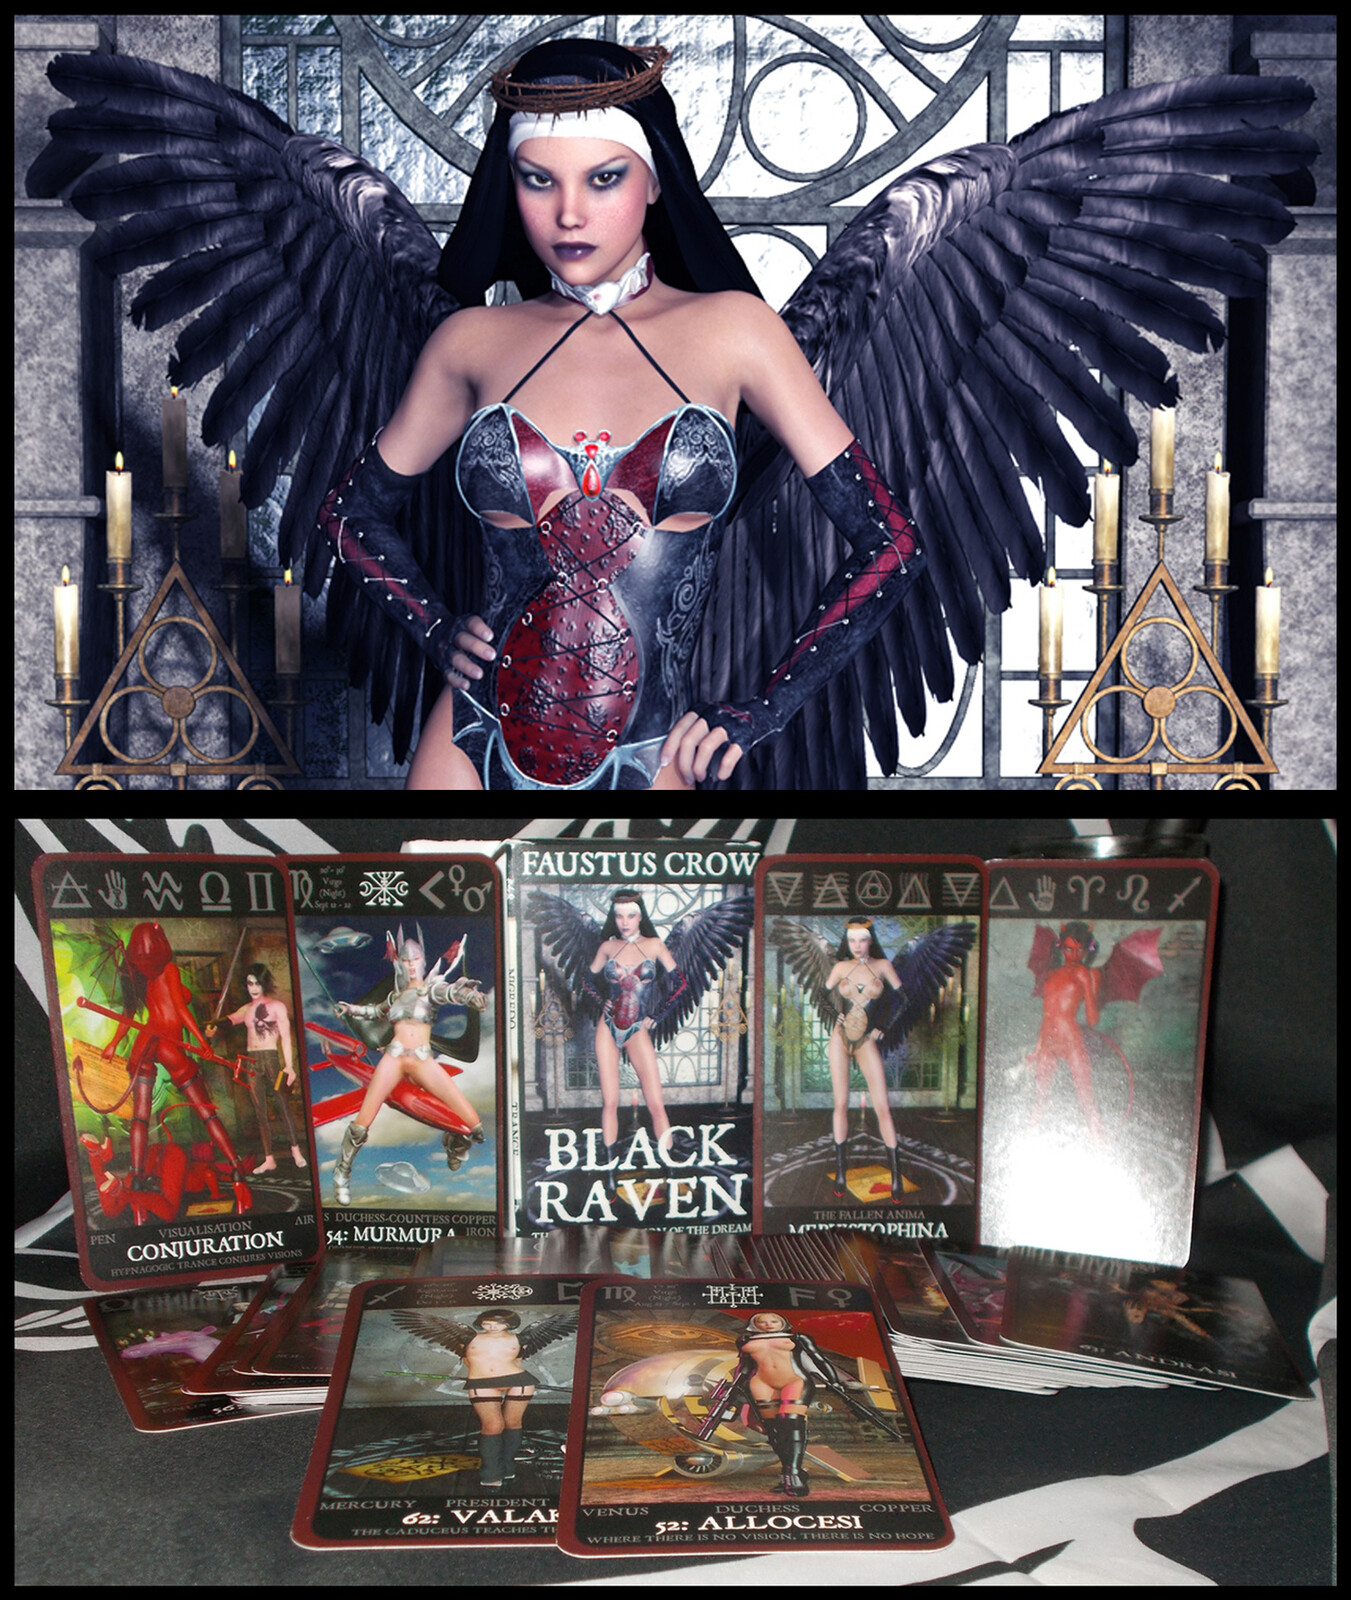 Black Raven Tarot deck. There are 80 cards, which have been published, having an accompanying fully illustrated grimoire.